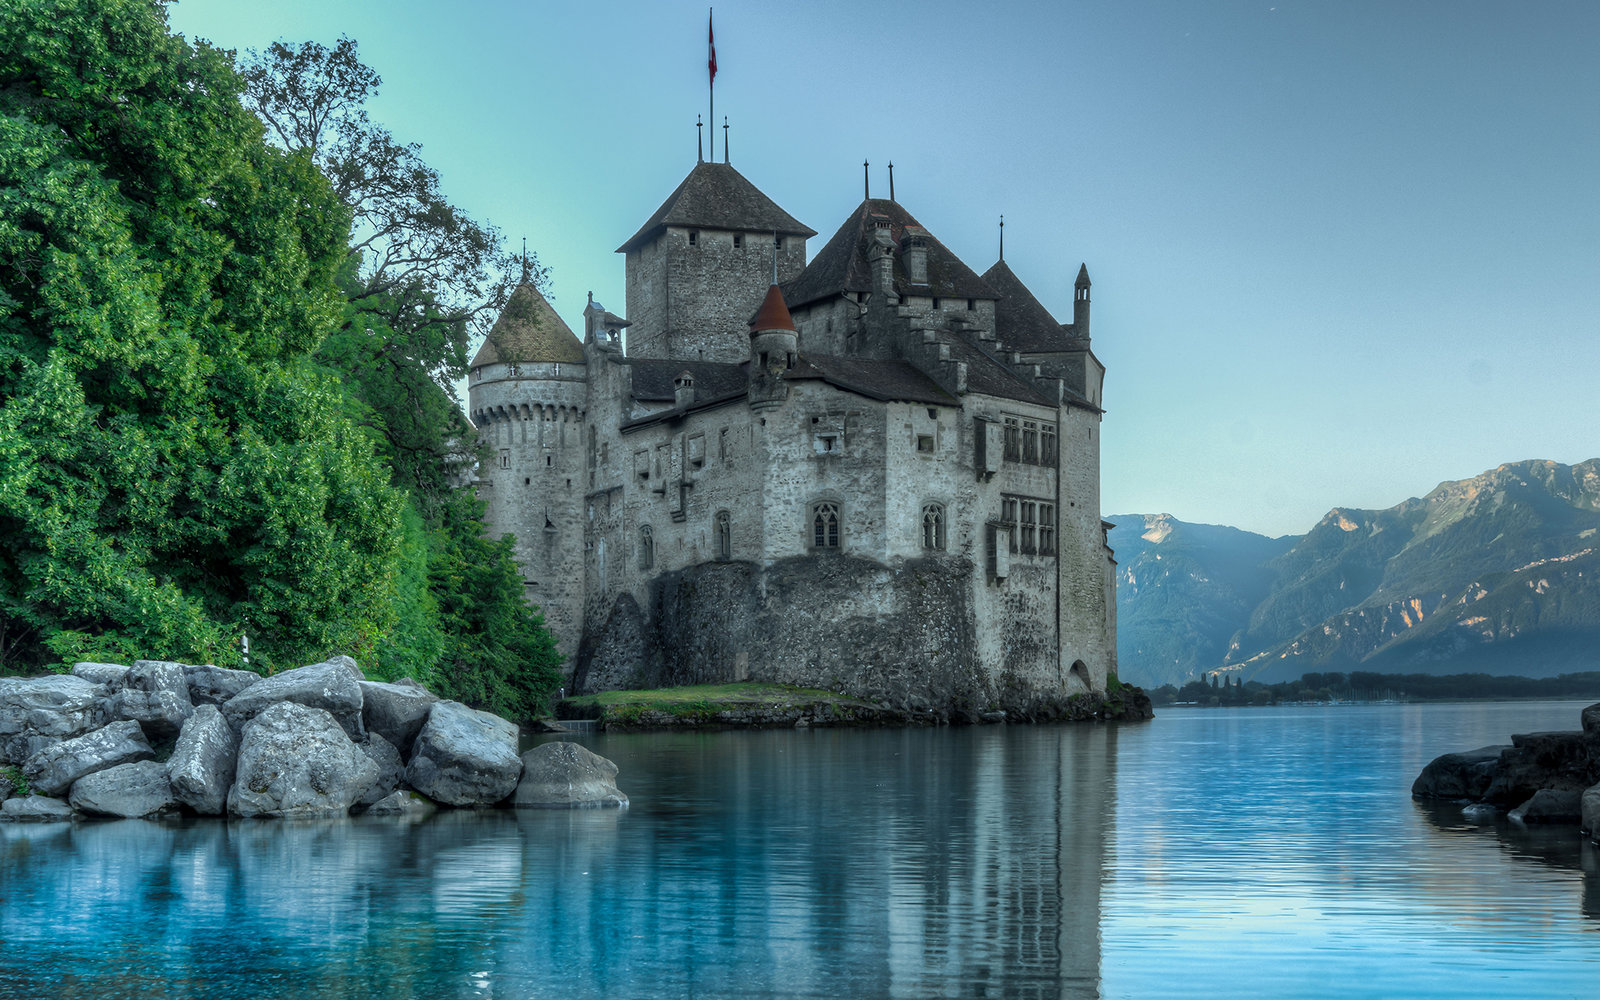 DDF21R HDR imge of Chateau de Chillon